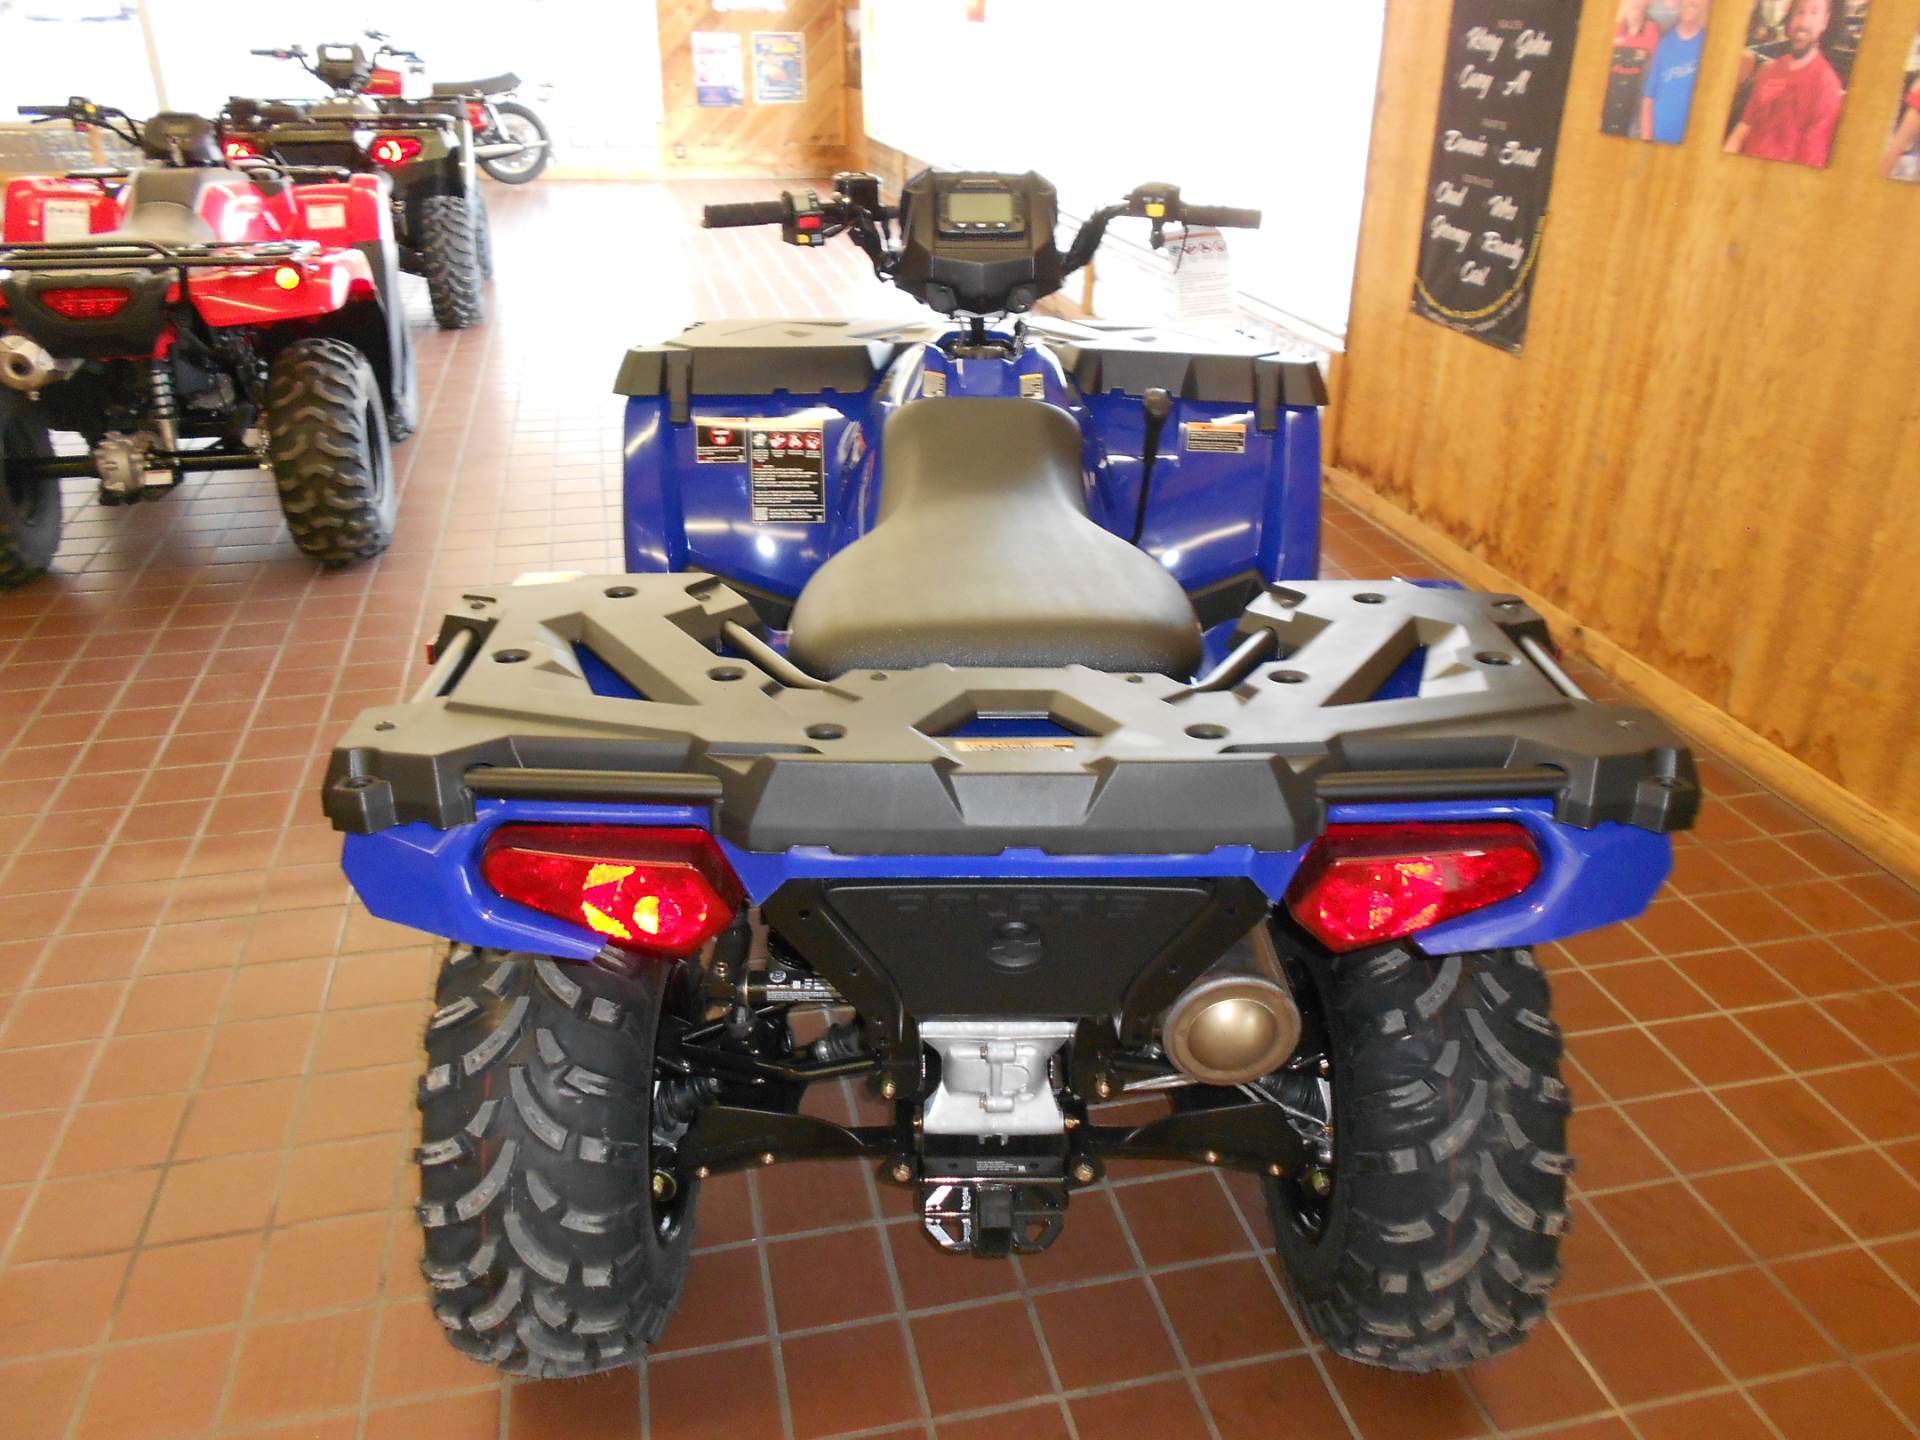 2020 Polaris Sportsman 450 H.O. in Abilene, Texas - Photo 4